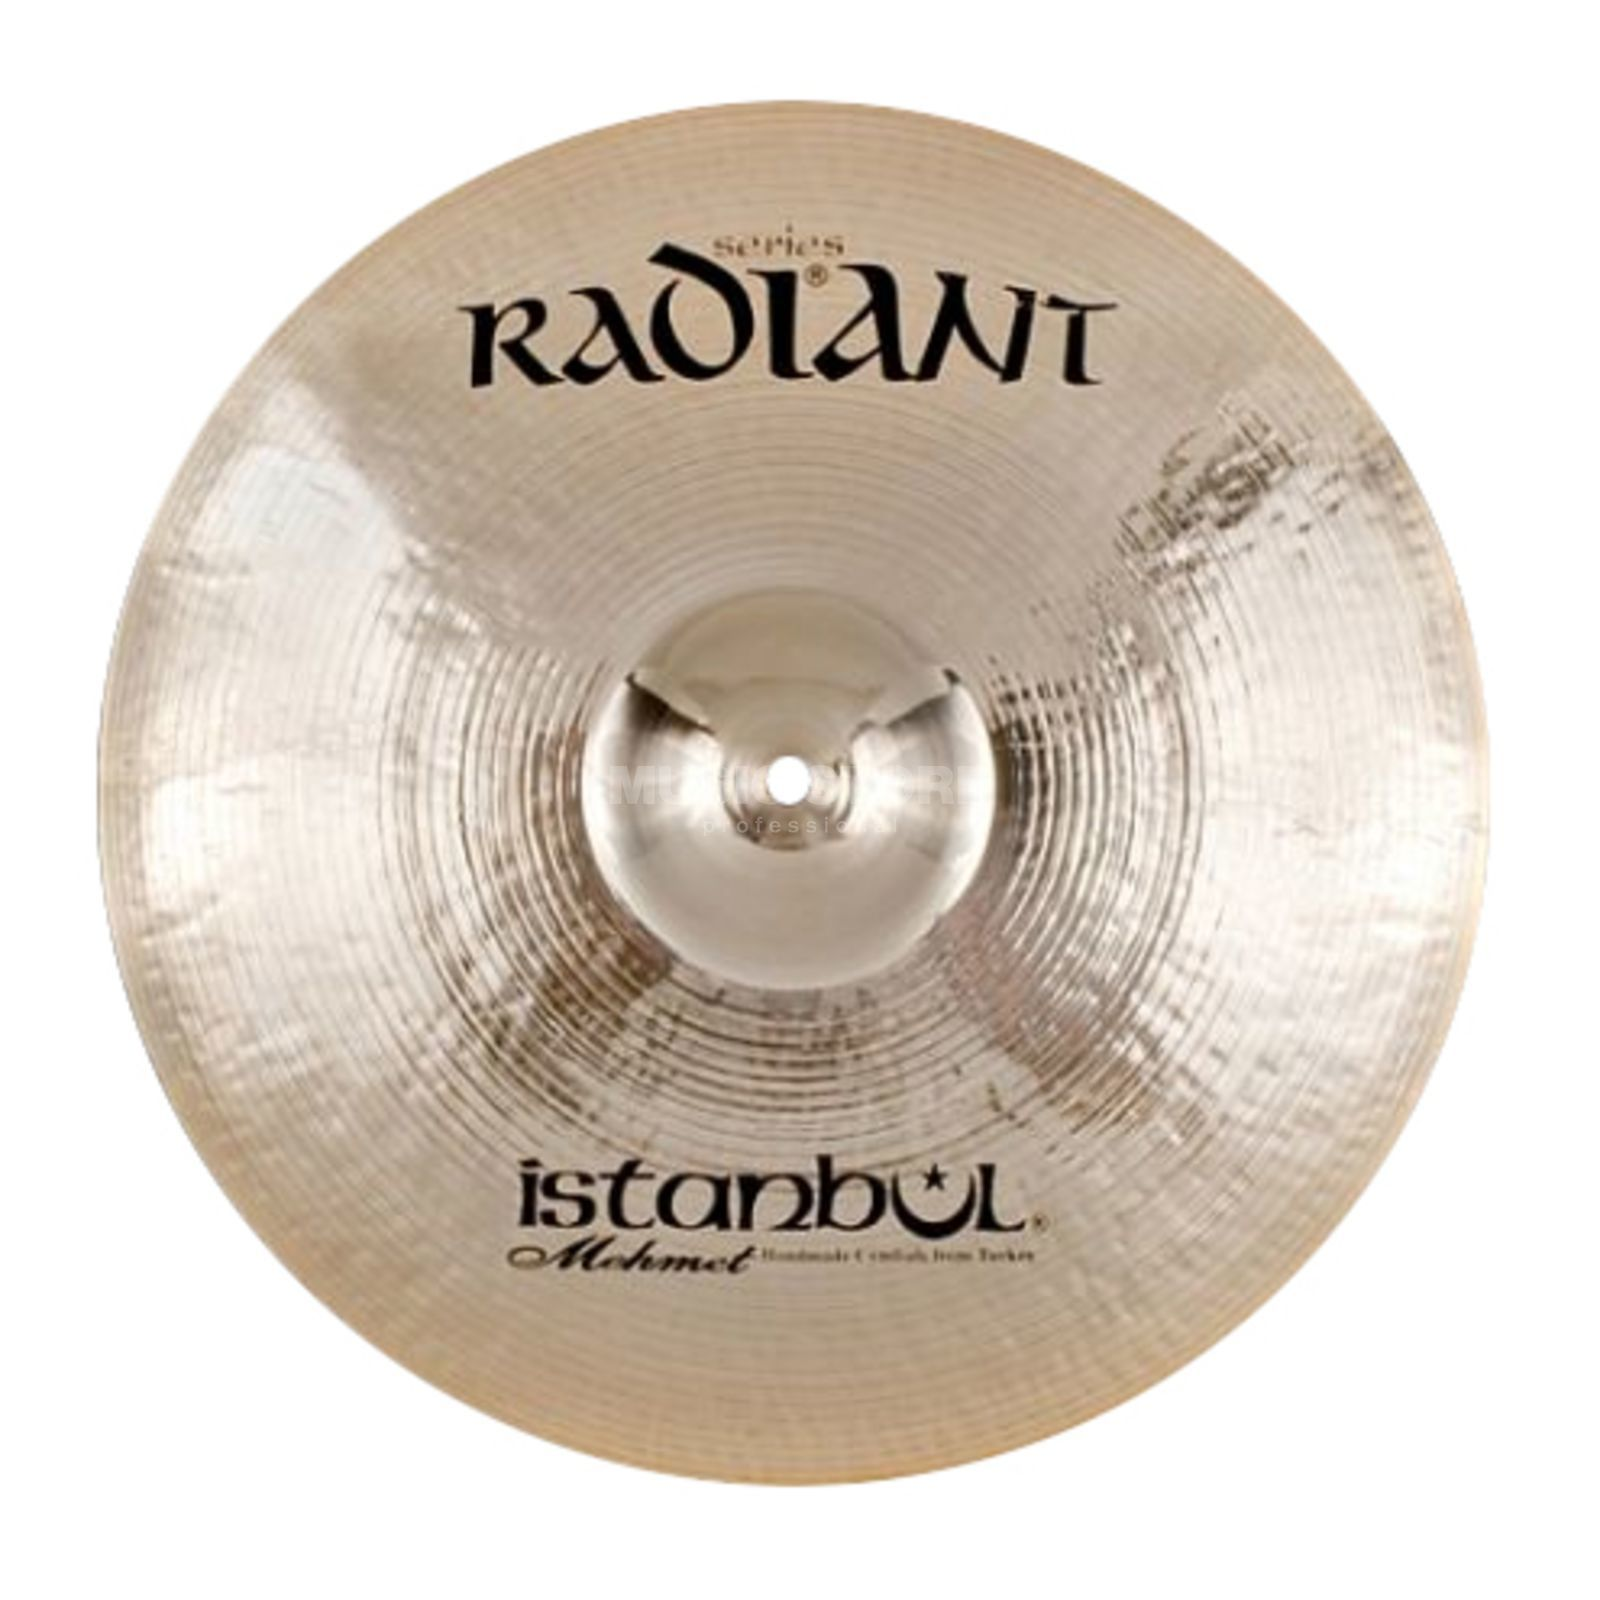 "Istanbul Radiant Rock Crash 17"", R-CRR18 Product Image"